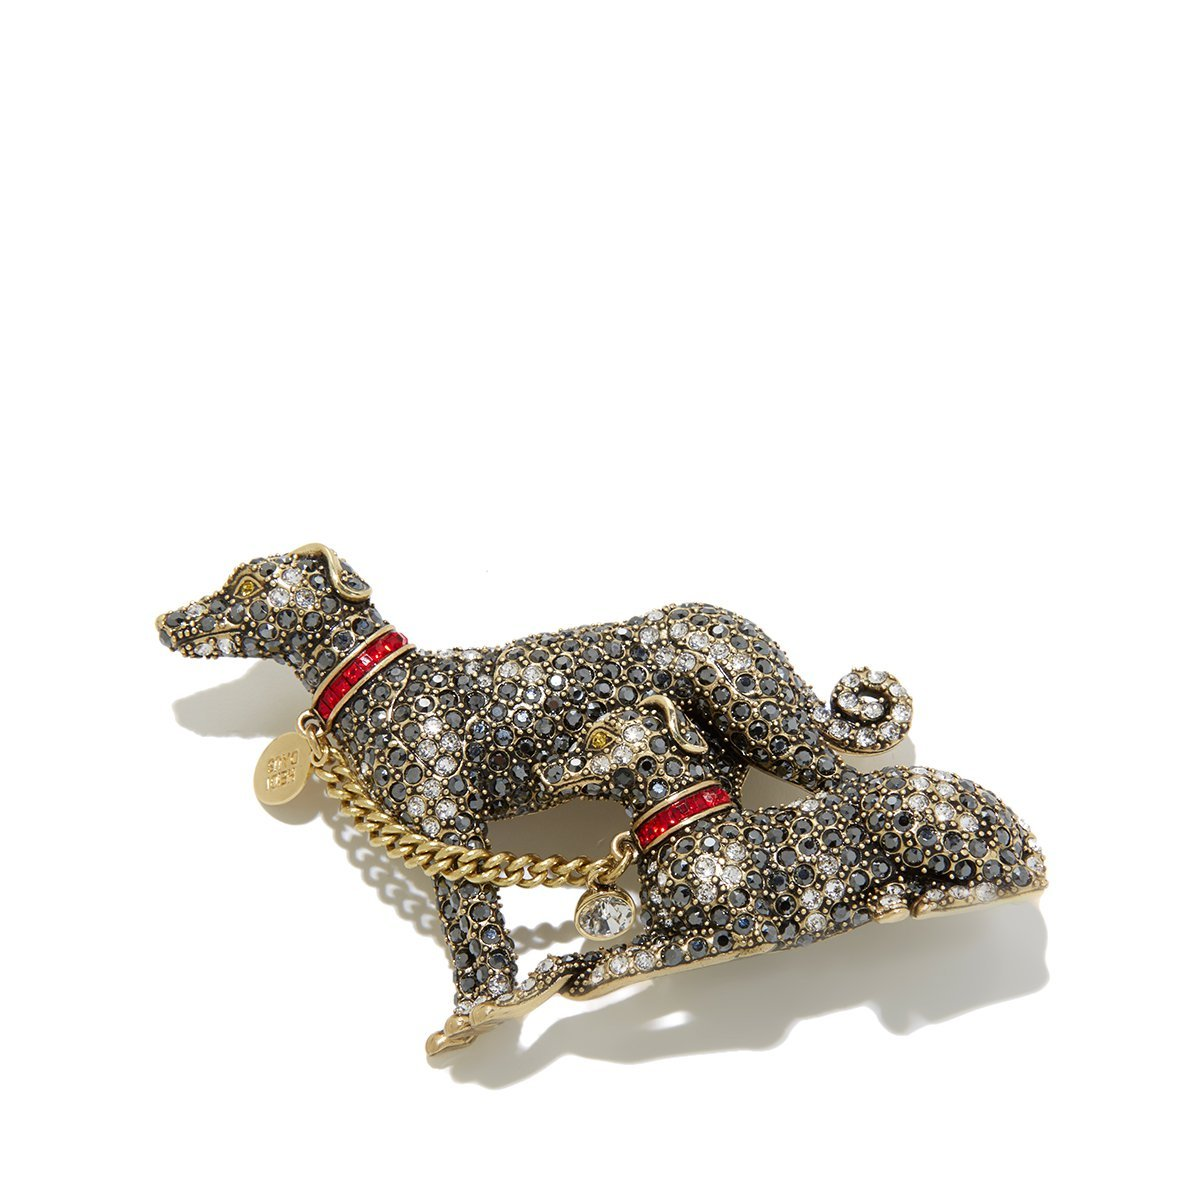 Heidi Daus Handsome Hounds Crystal Pin Brooch